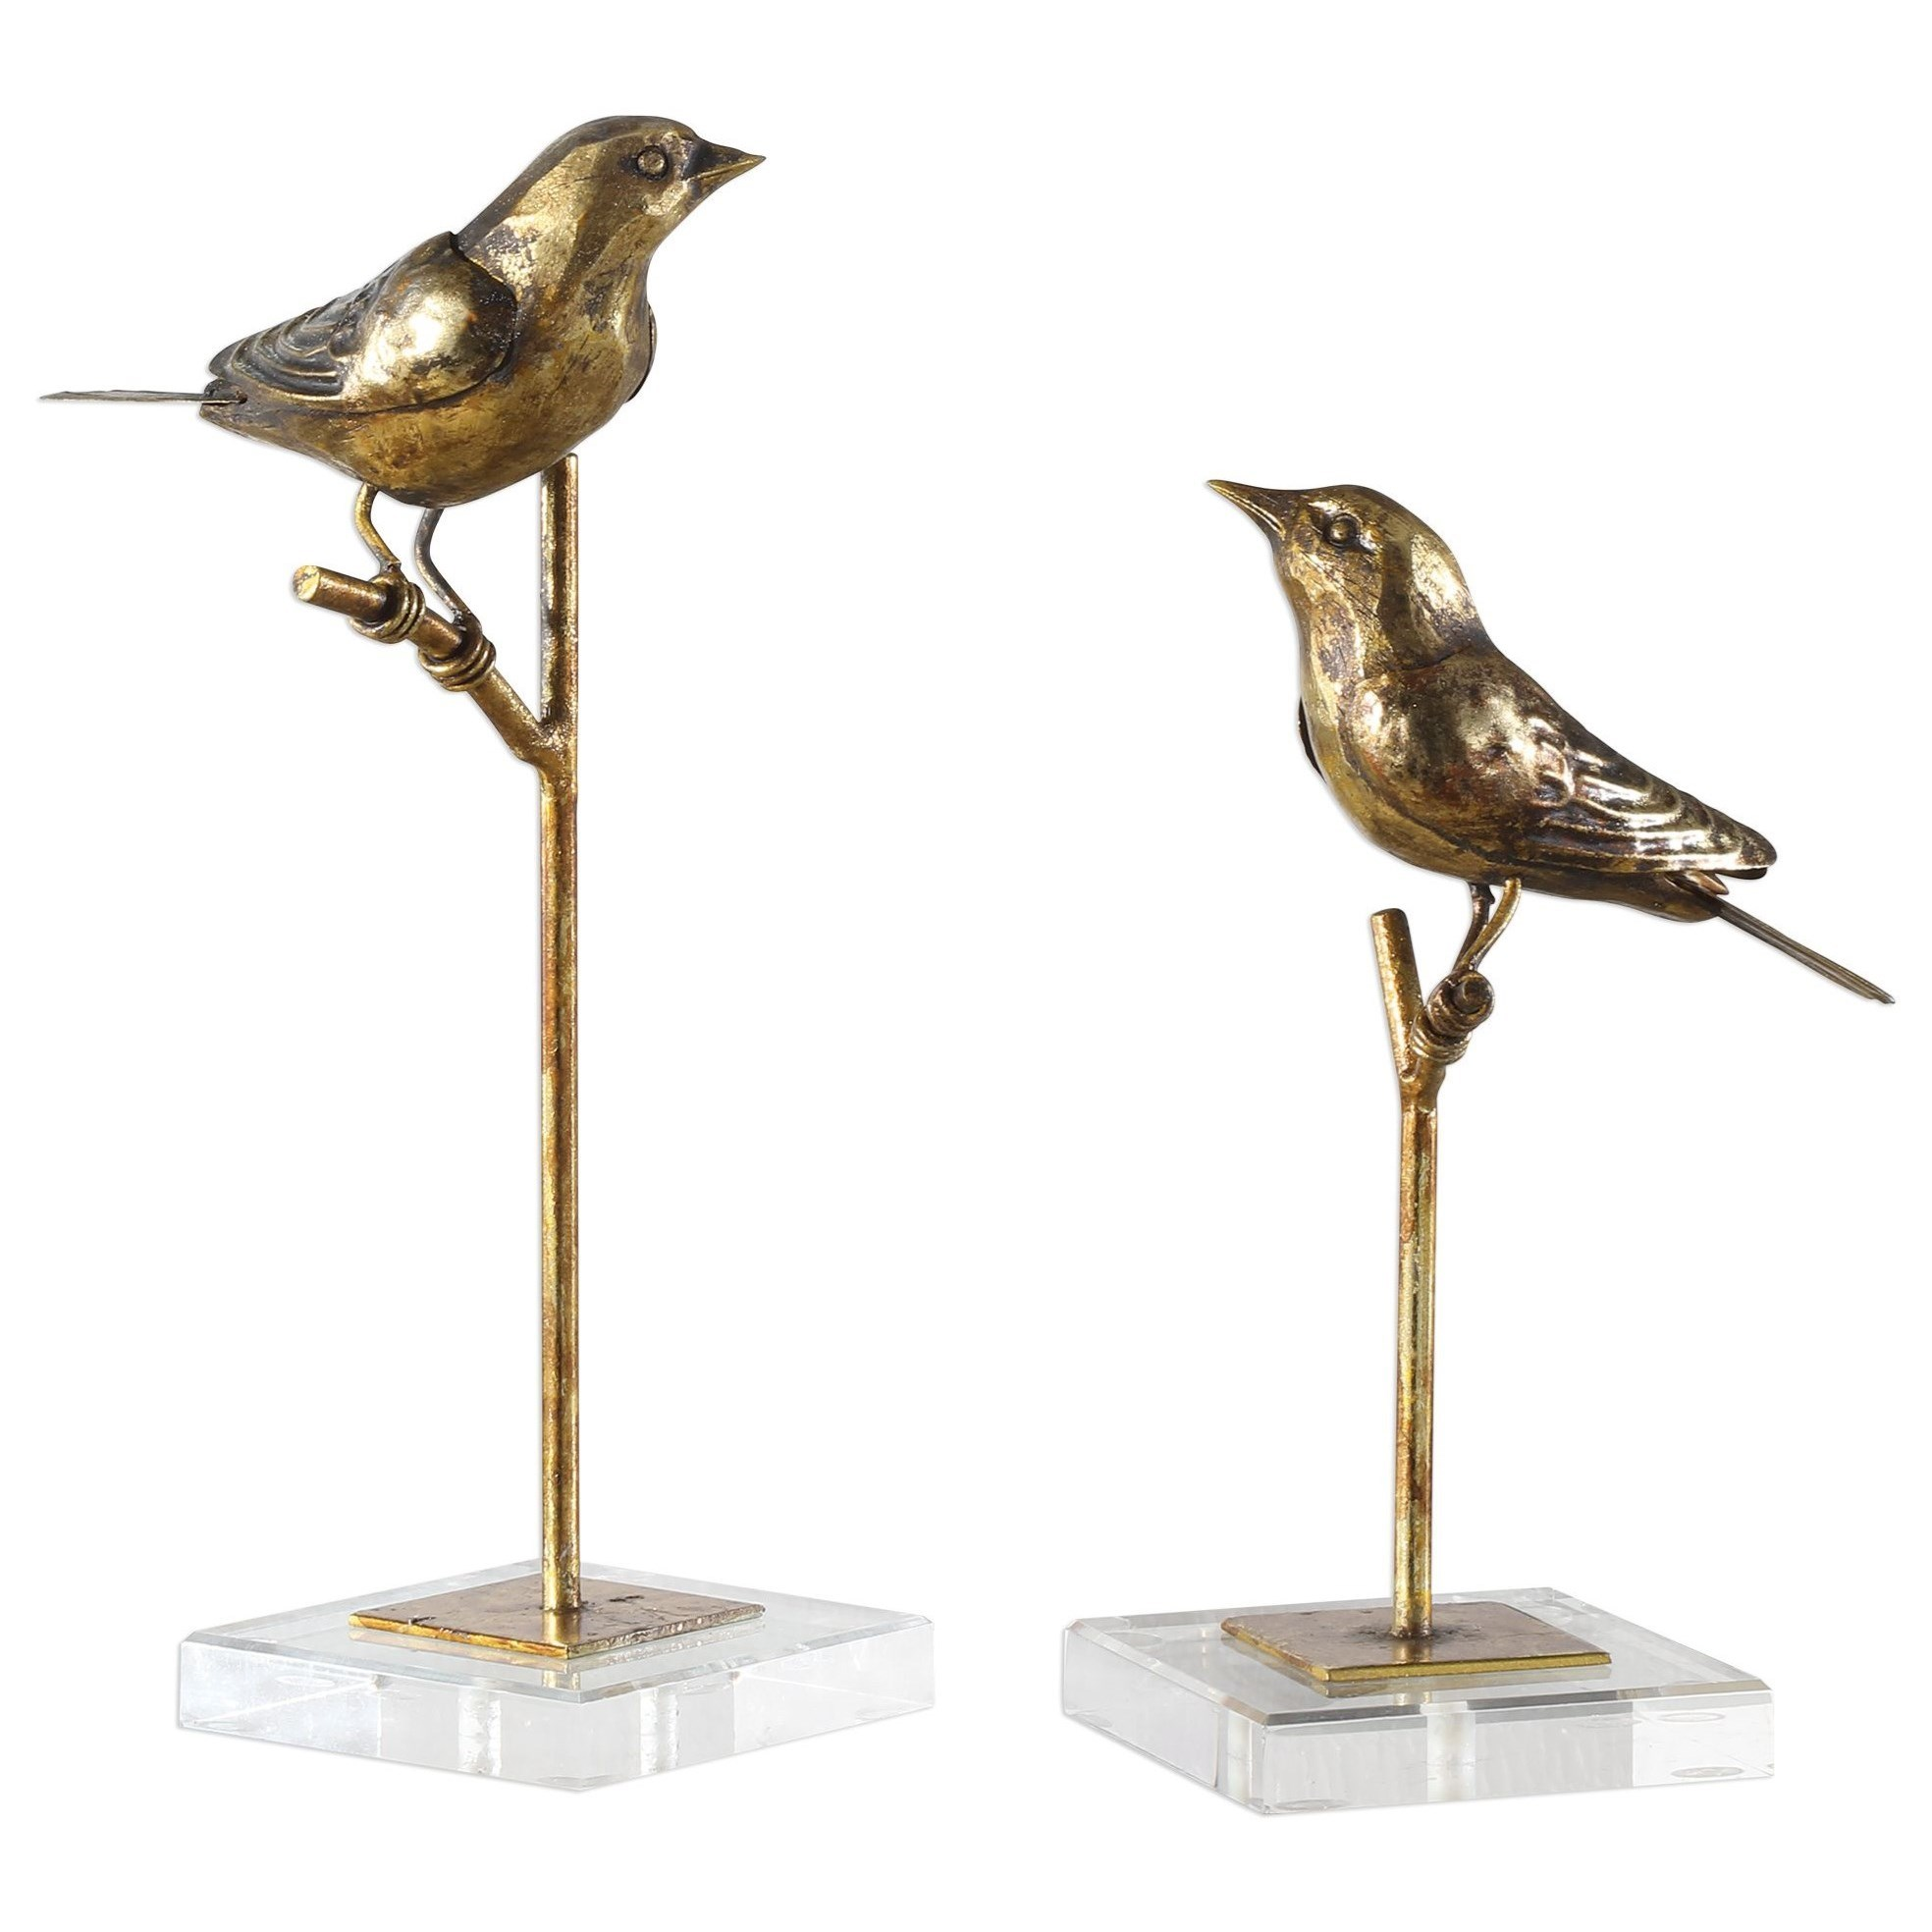 Accessories - Statues and Figurines Passerines Bird Sculptures S/2 by Uttermost at Suburban Furniture